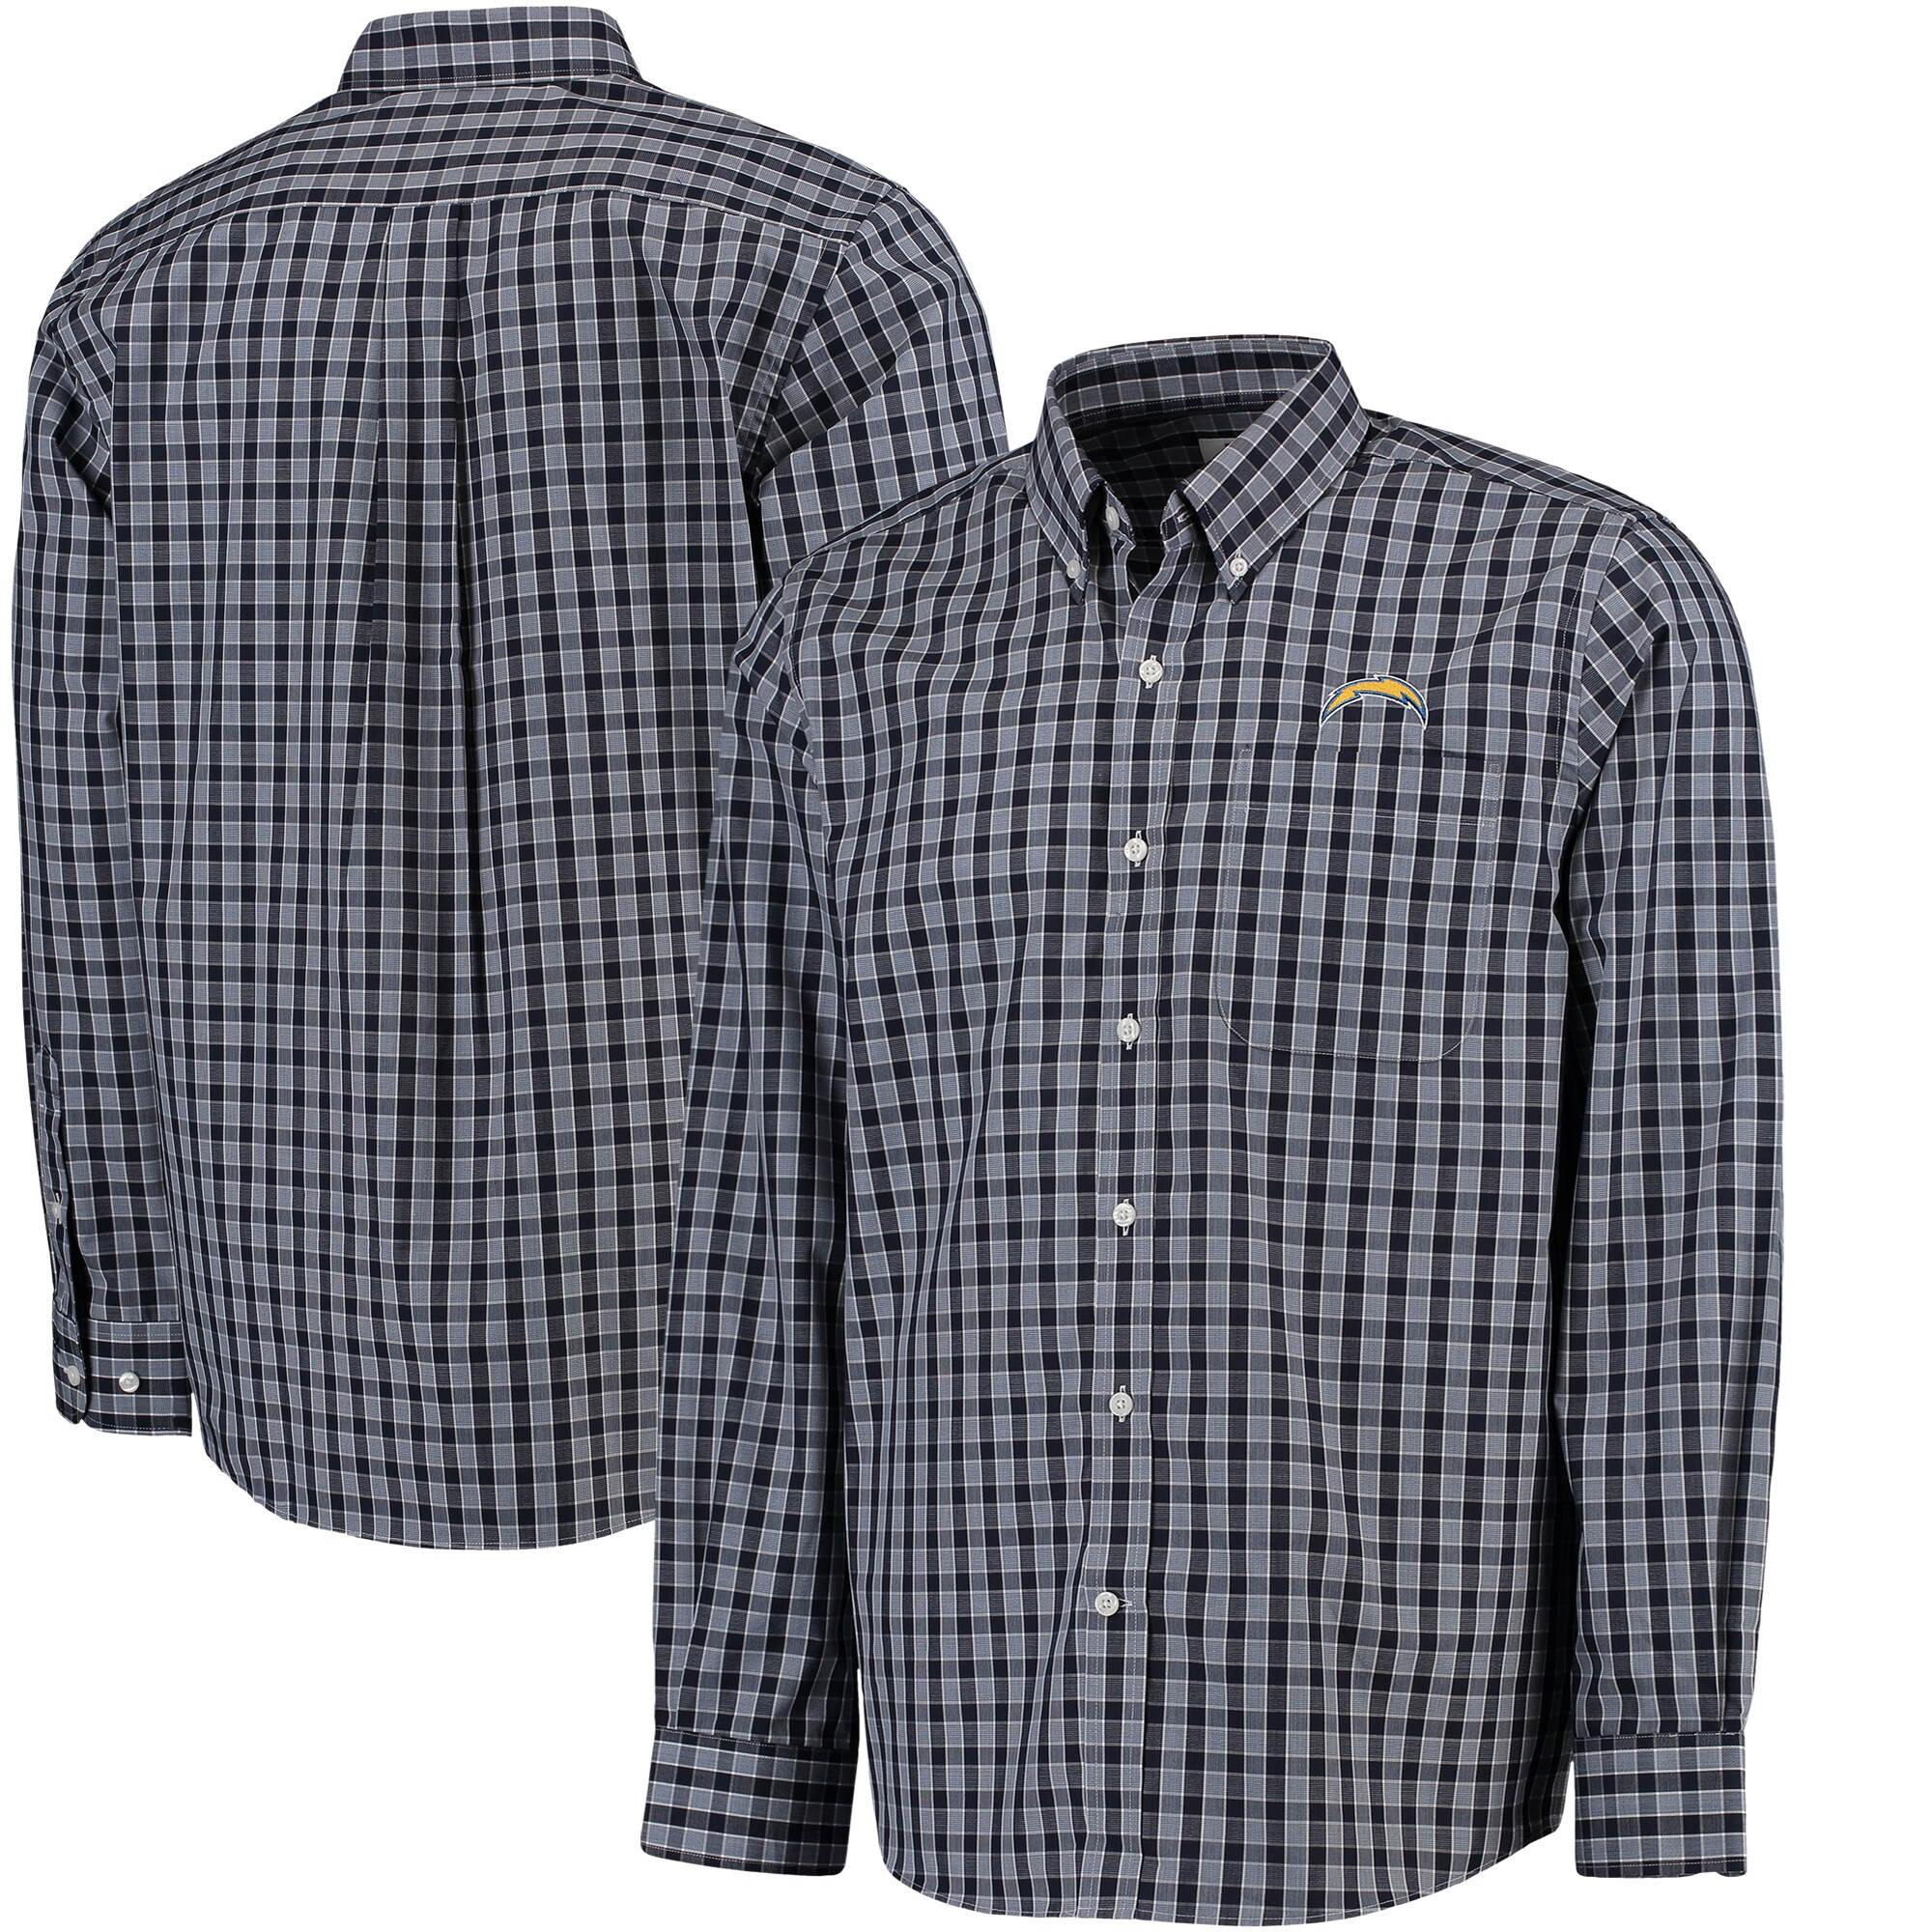 Los Angeles Chargers Cutter & Buck Discovery Park Plaid Long Sleeve Woven Shirt - Navy